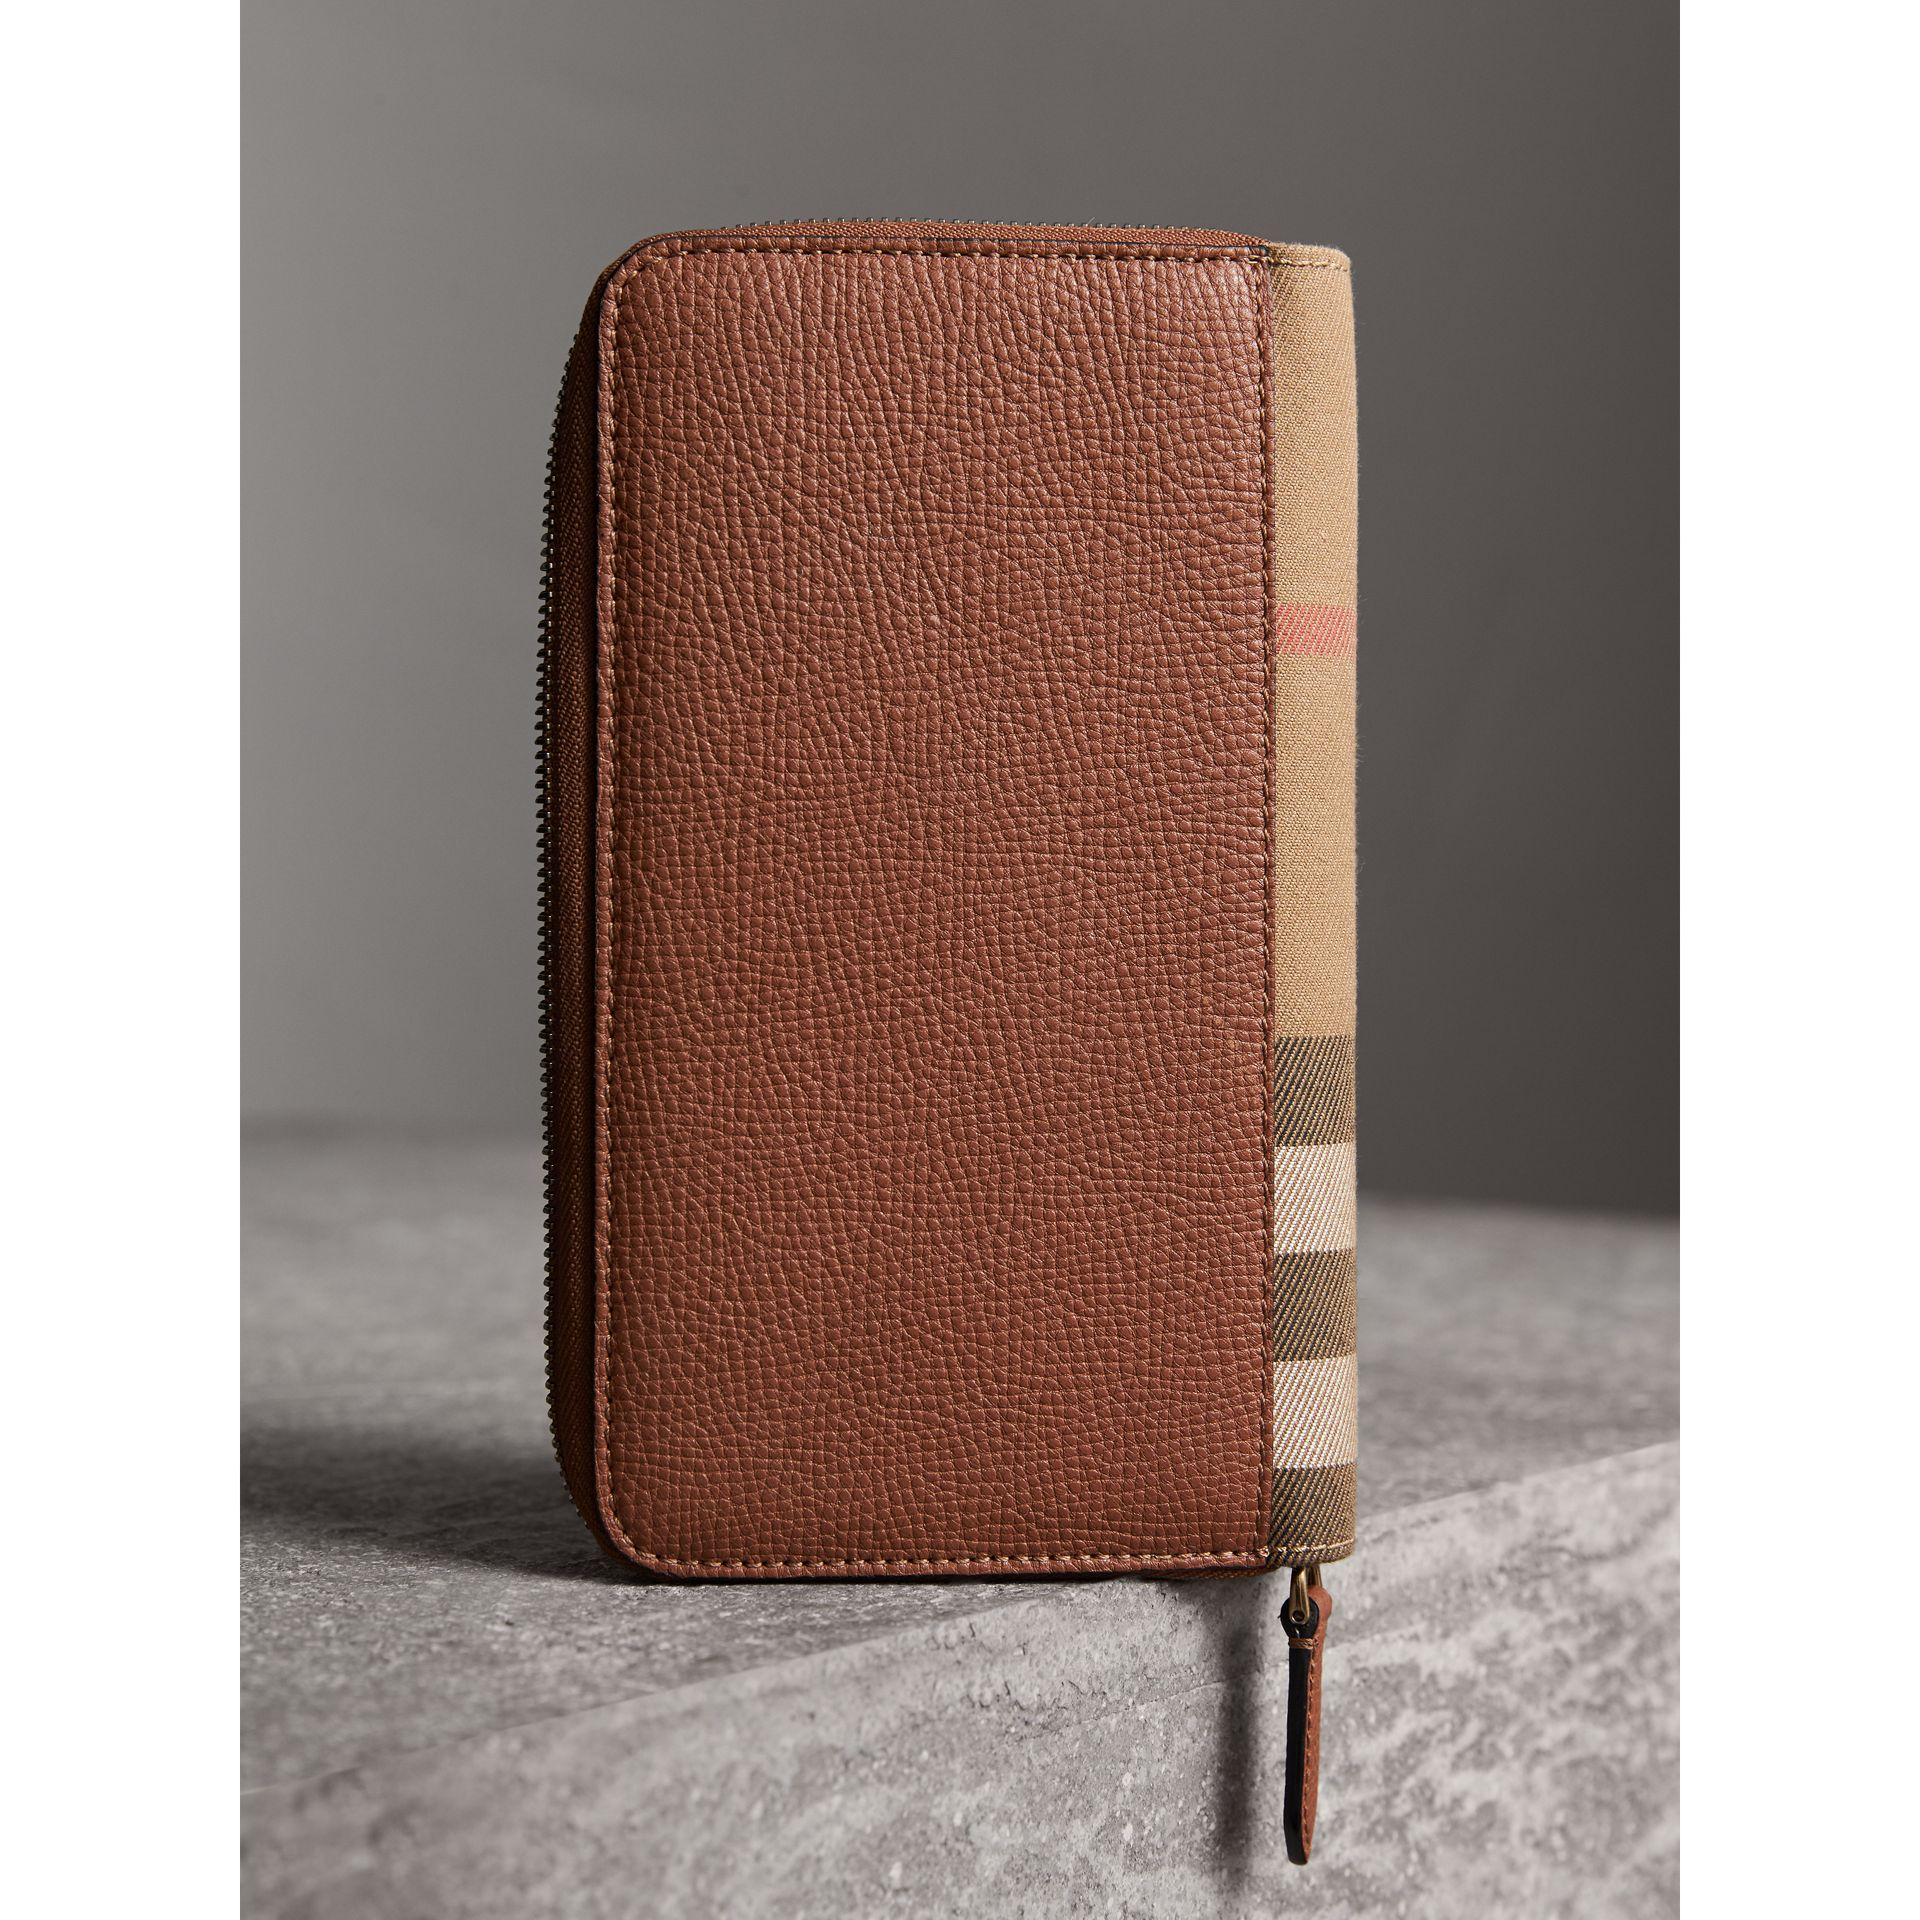 House Check and Grainy Leather Ziparound Wallet in Chestnut Brown - Men | Burberry United Kingdom - gallery image 3